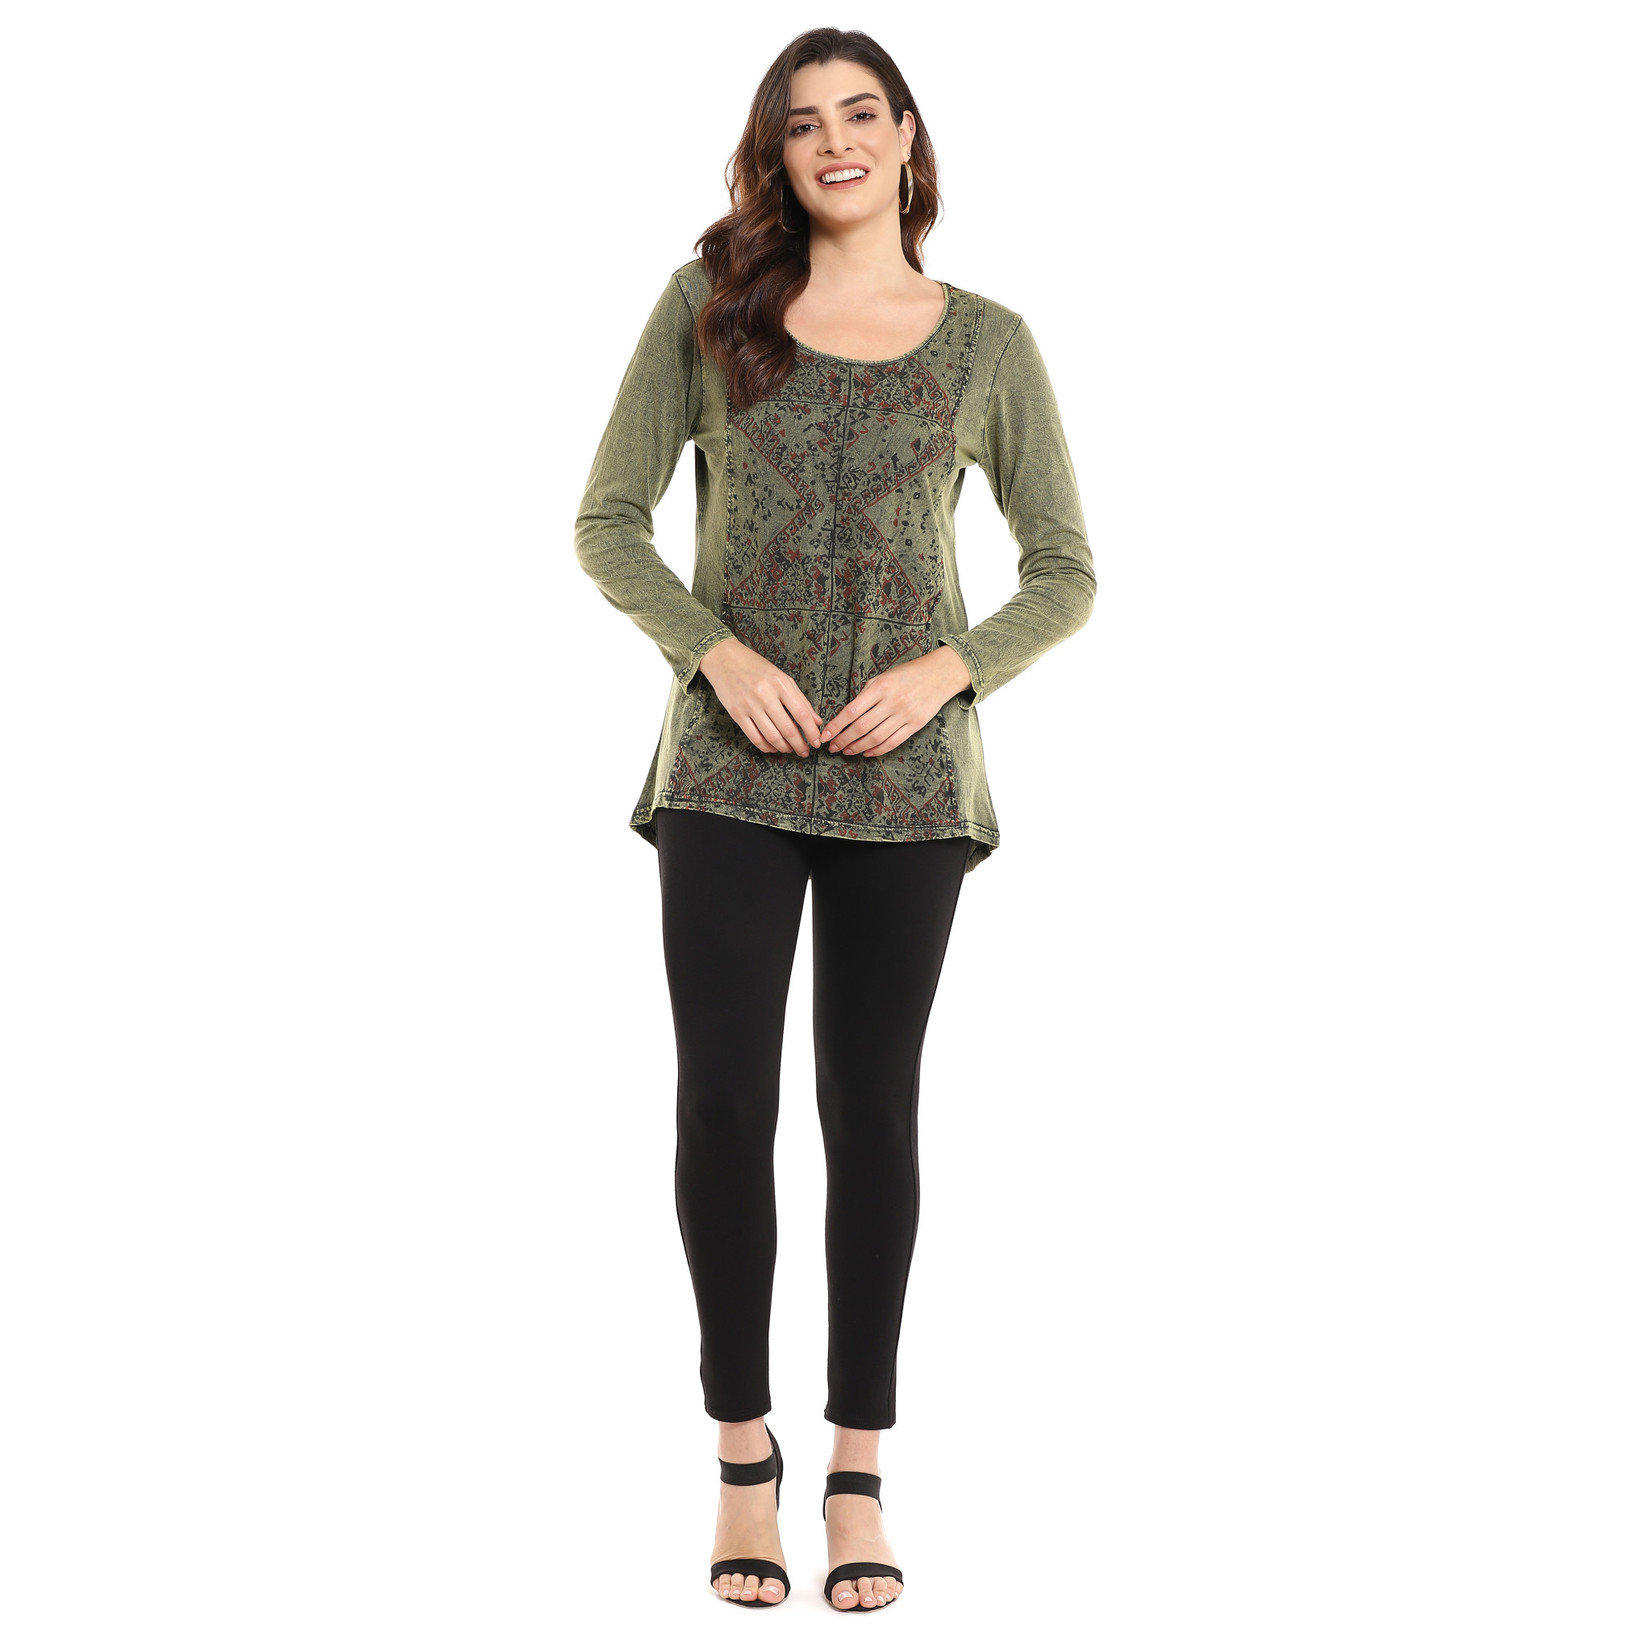 Parsley and Sage Rhea Embroidered Top in Olive